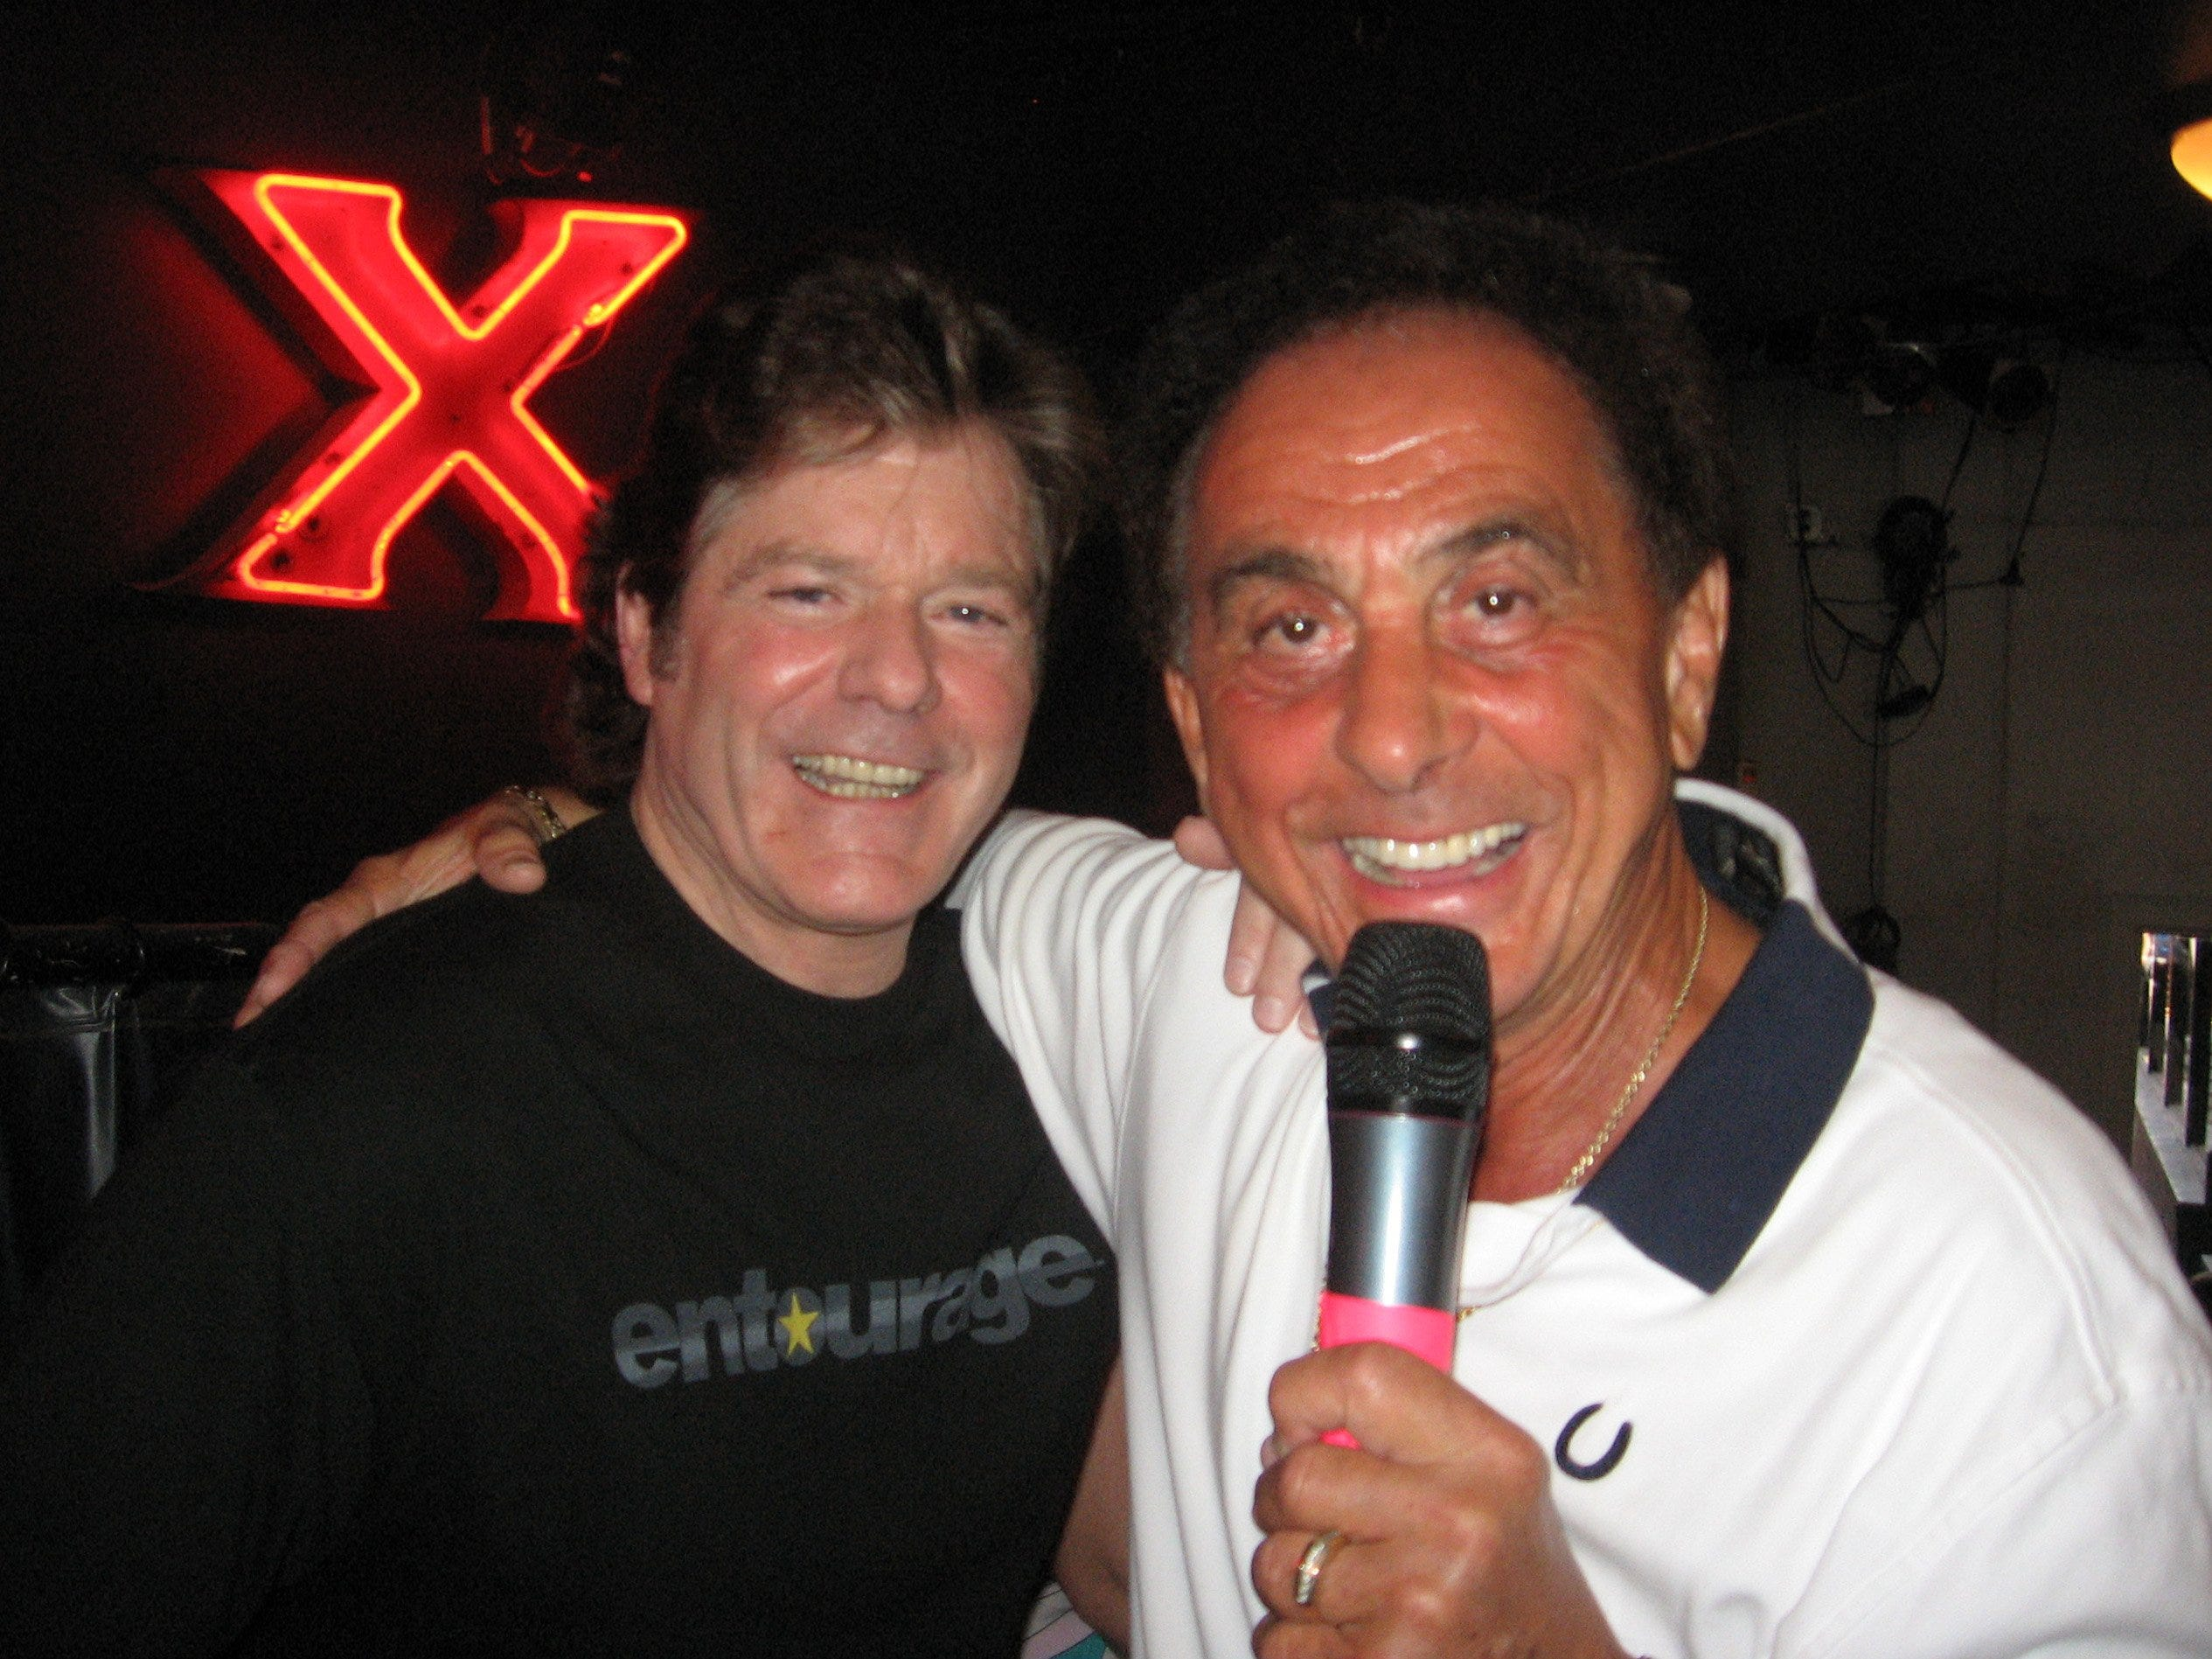 Jerry Schilling, left, was a special guest of George Klein, right, at Klein's Elvis Mafia Reunion Tour.